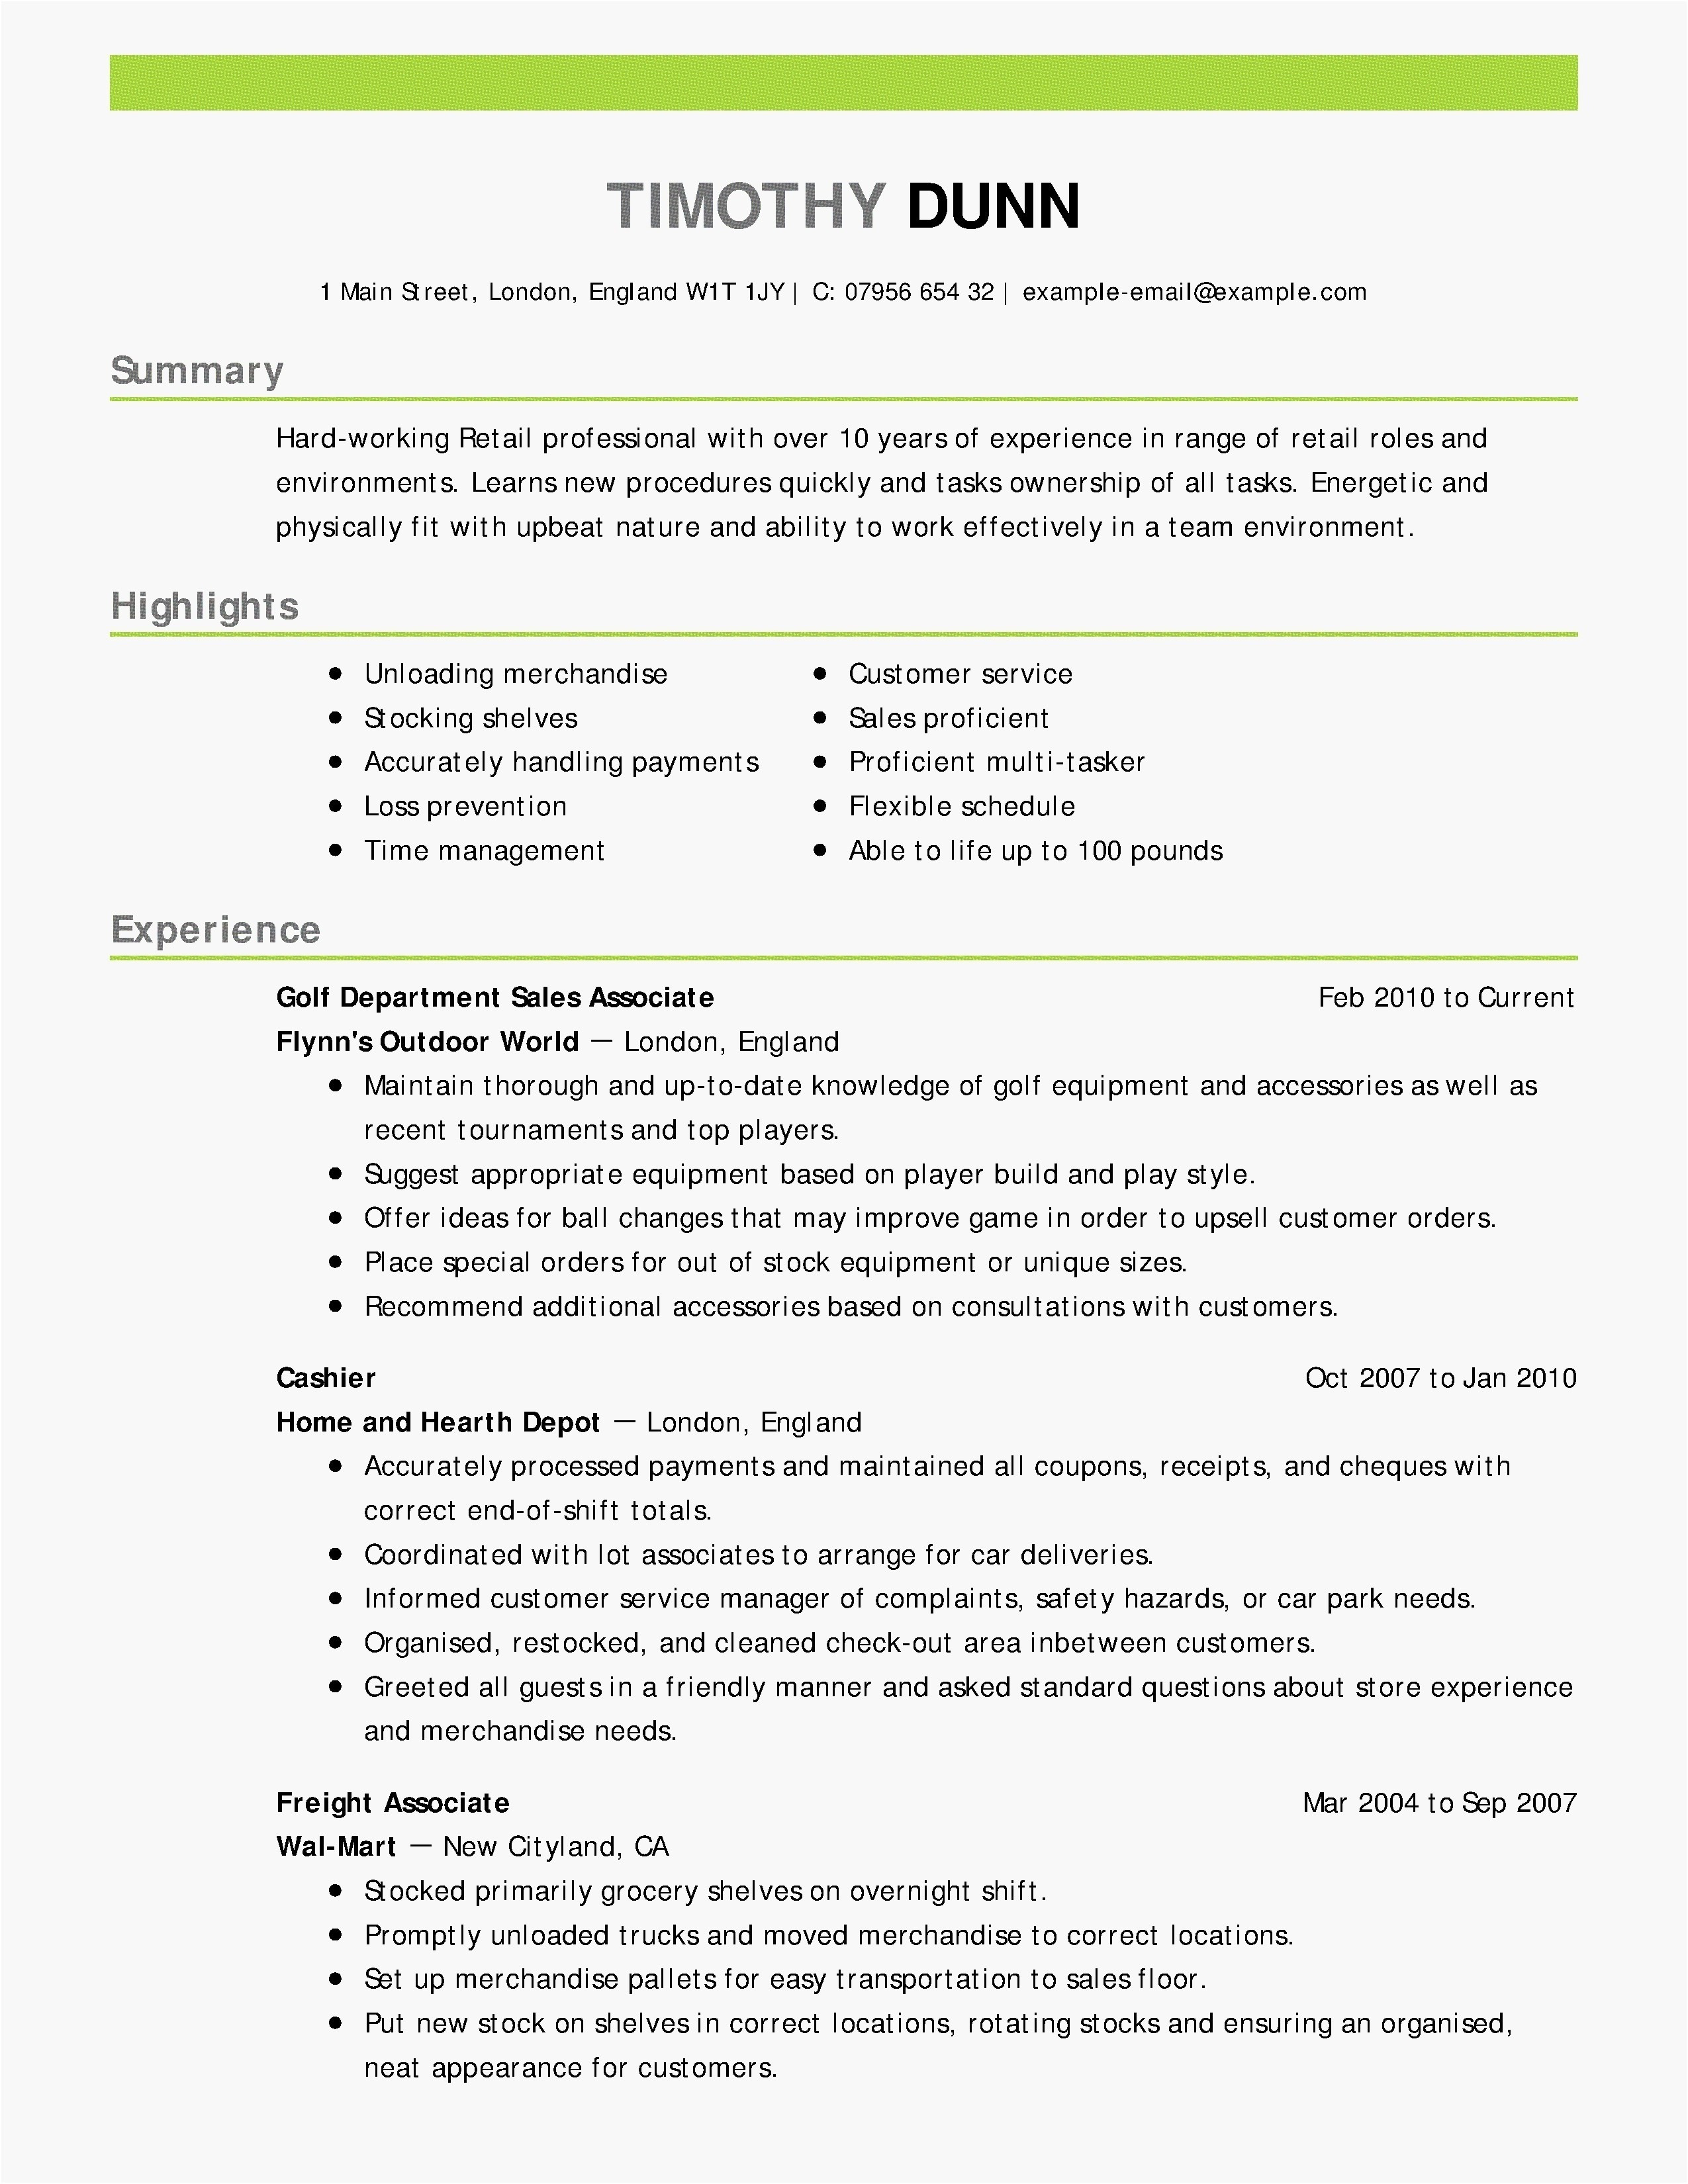 Resume and Cover Letter Template - Nature Cover Letter Example New Fix My Resume Lovely Fresh Entry